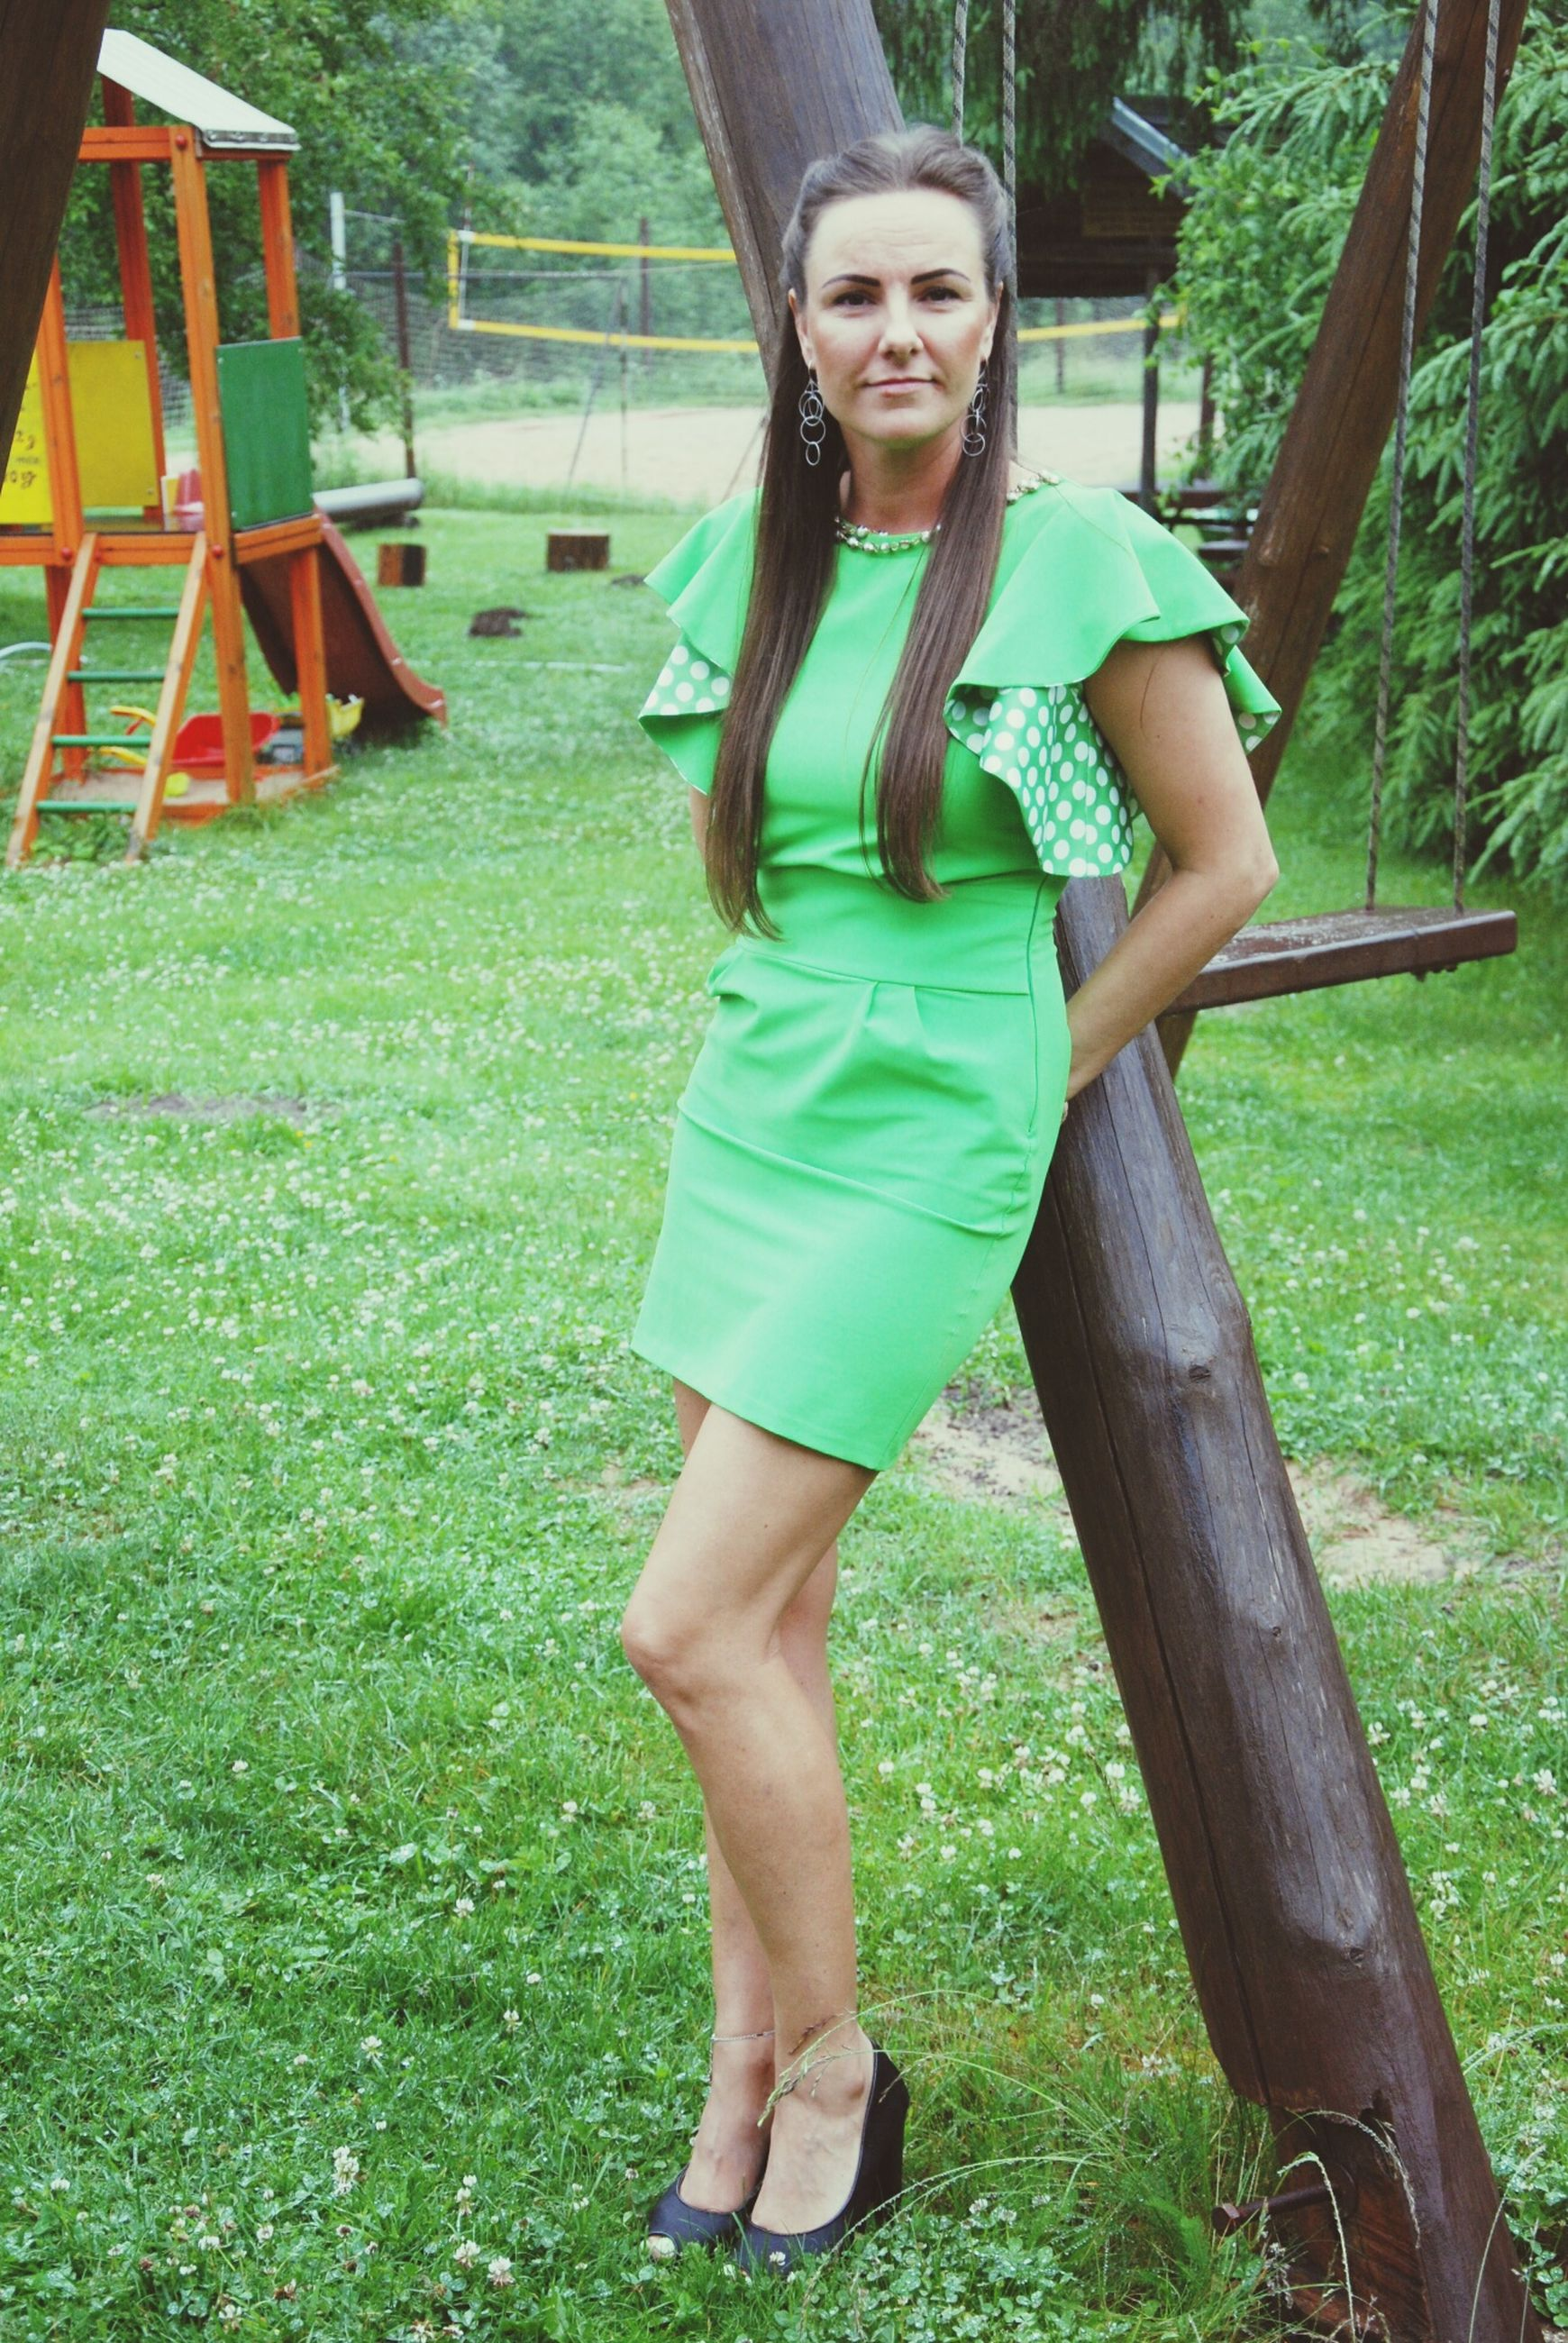 grass, one person, real people, leisure activity, casual clothing, day, green color, lifestyles, tree, full length, outdoors, young women, standing, beautiful woman, young adult, smiling, nature, happiness, looking at camera, portrait